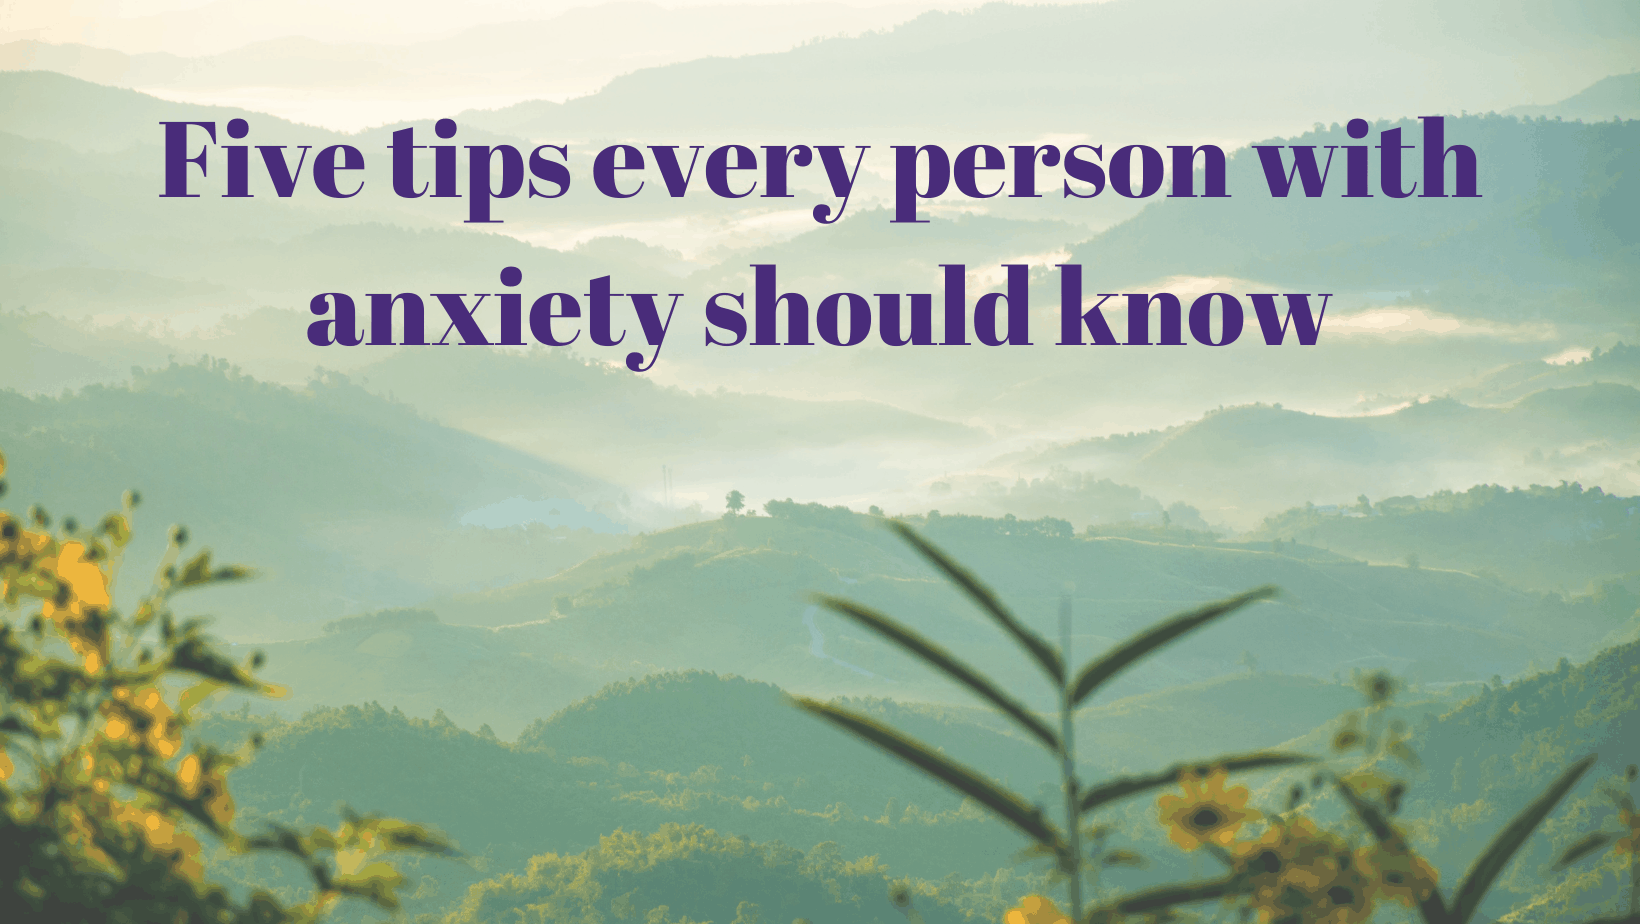 Every person with anxiety should know